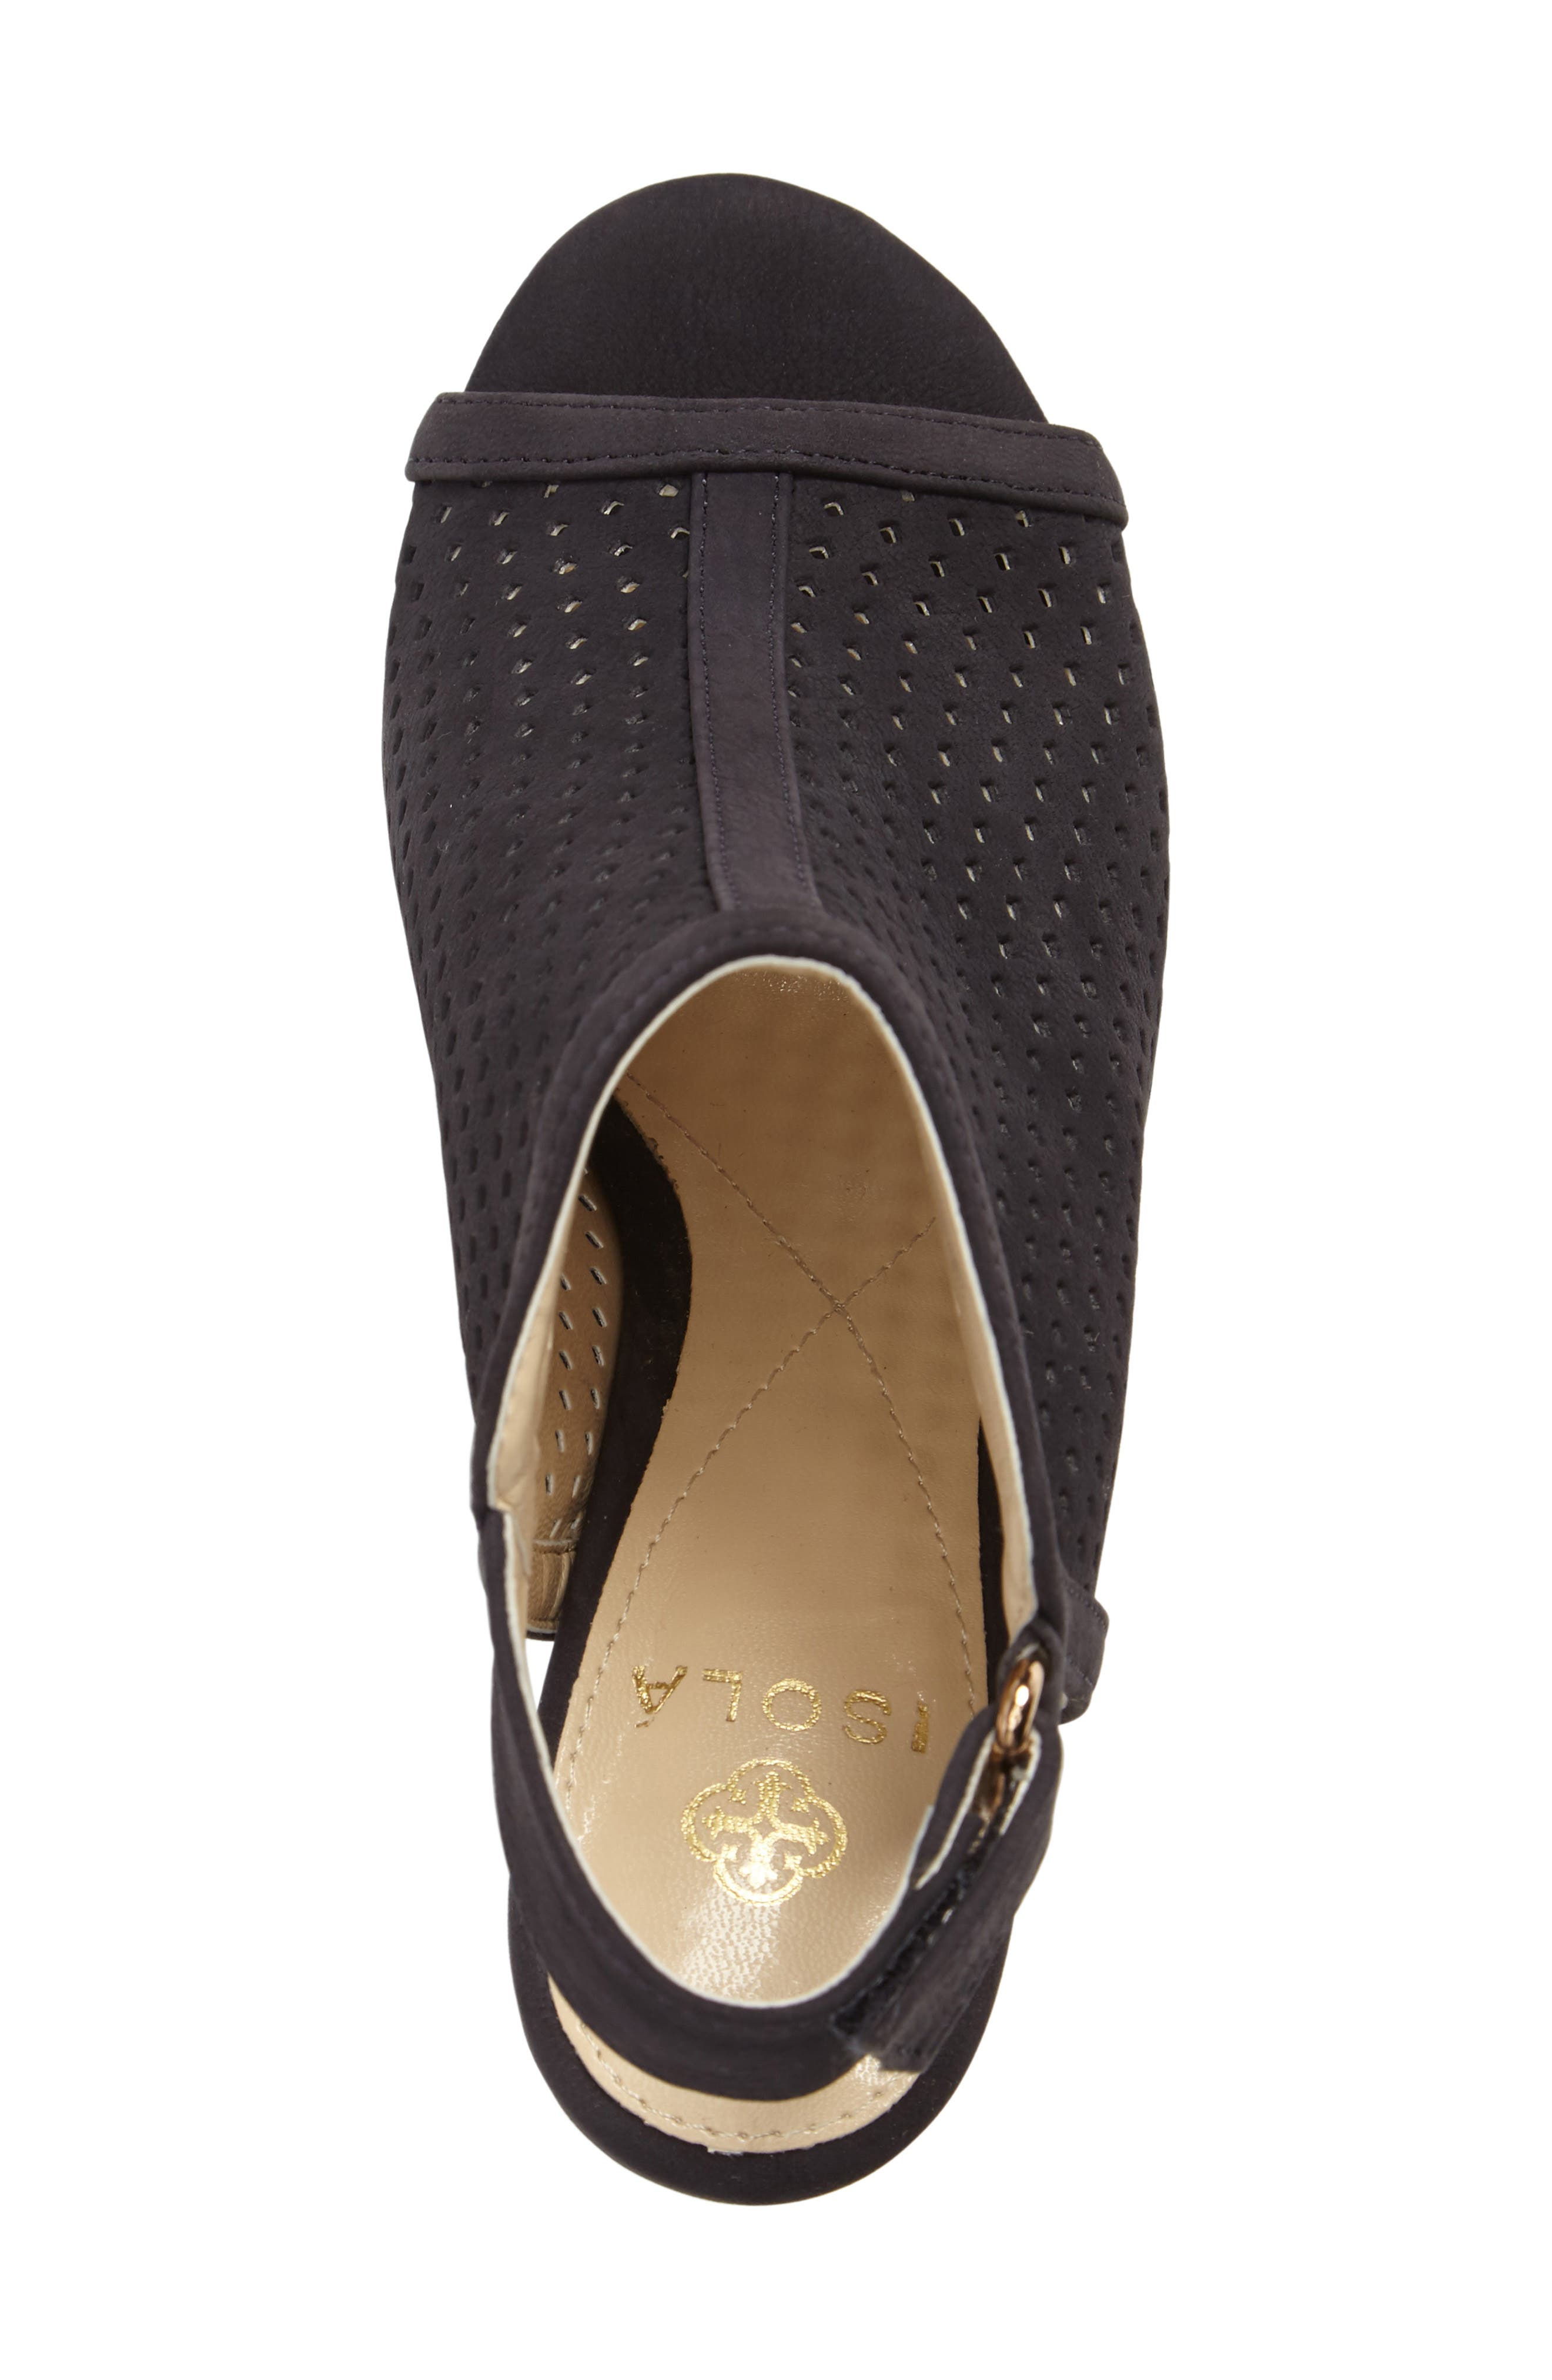 ,                             'Lora' Perforated Open-Toe Bootie Sandal,                             Alternate thumbnail 22, color,                             410